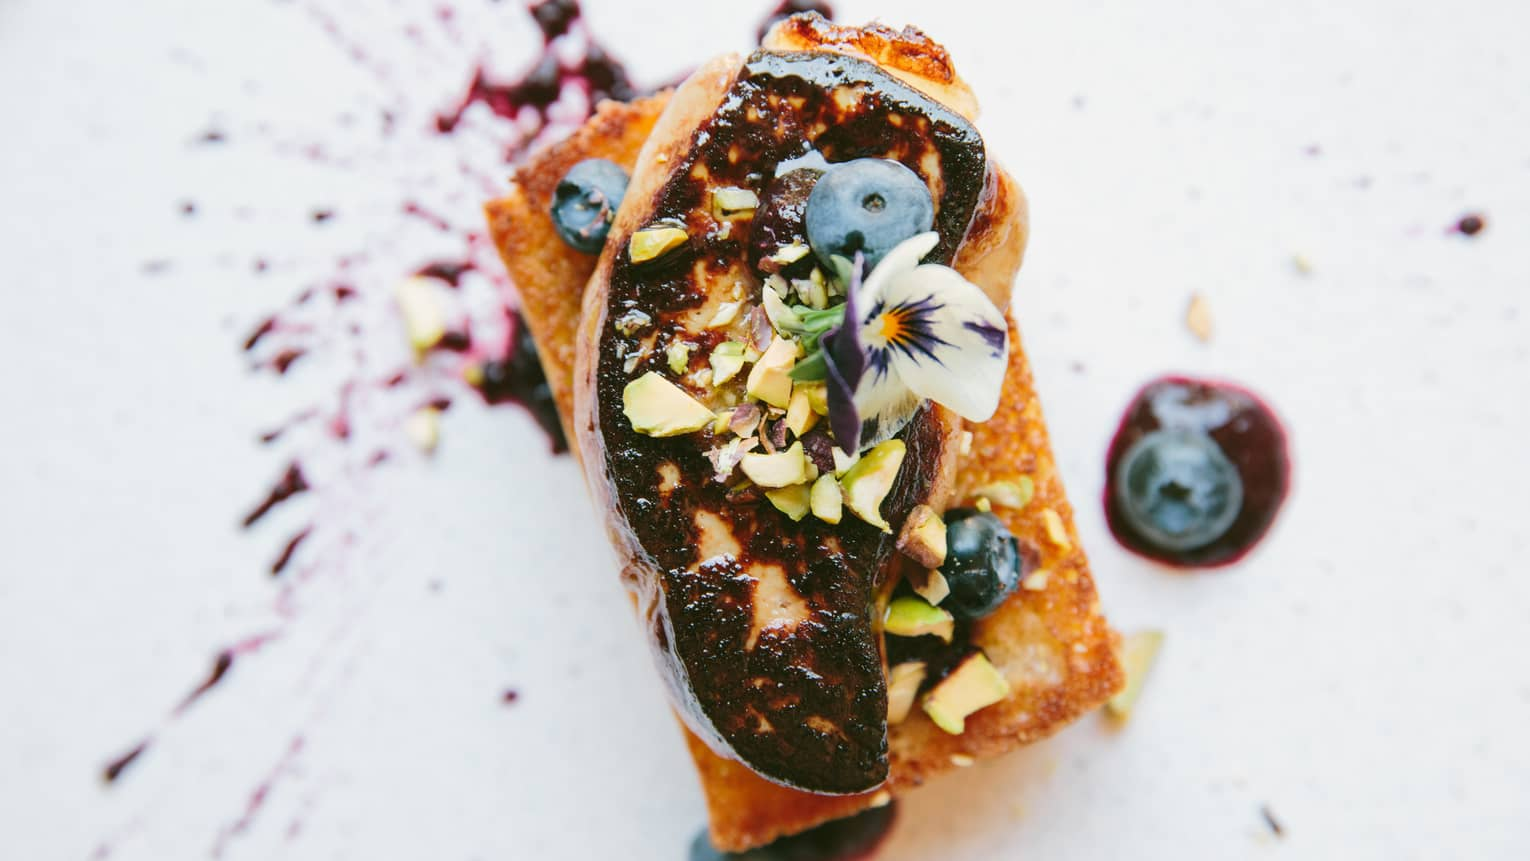 Hudson Valley foie gras delicately topped with blueberries, cashews and a flower